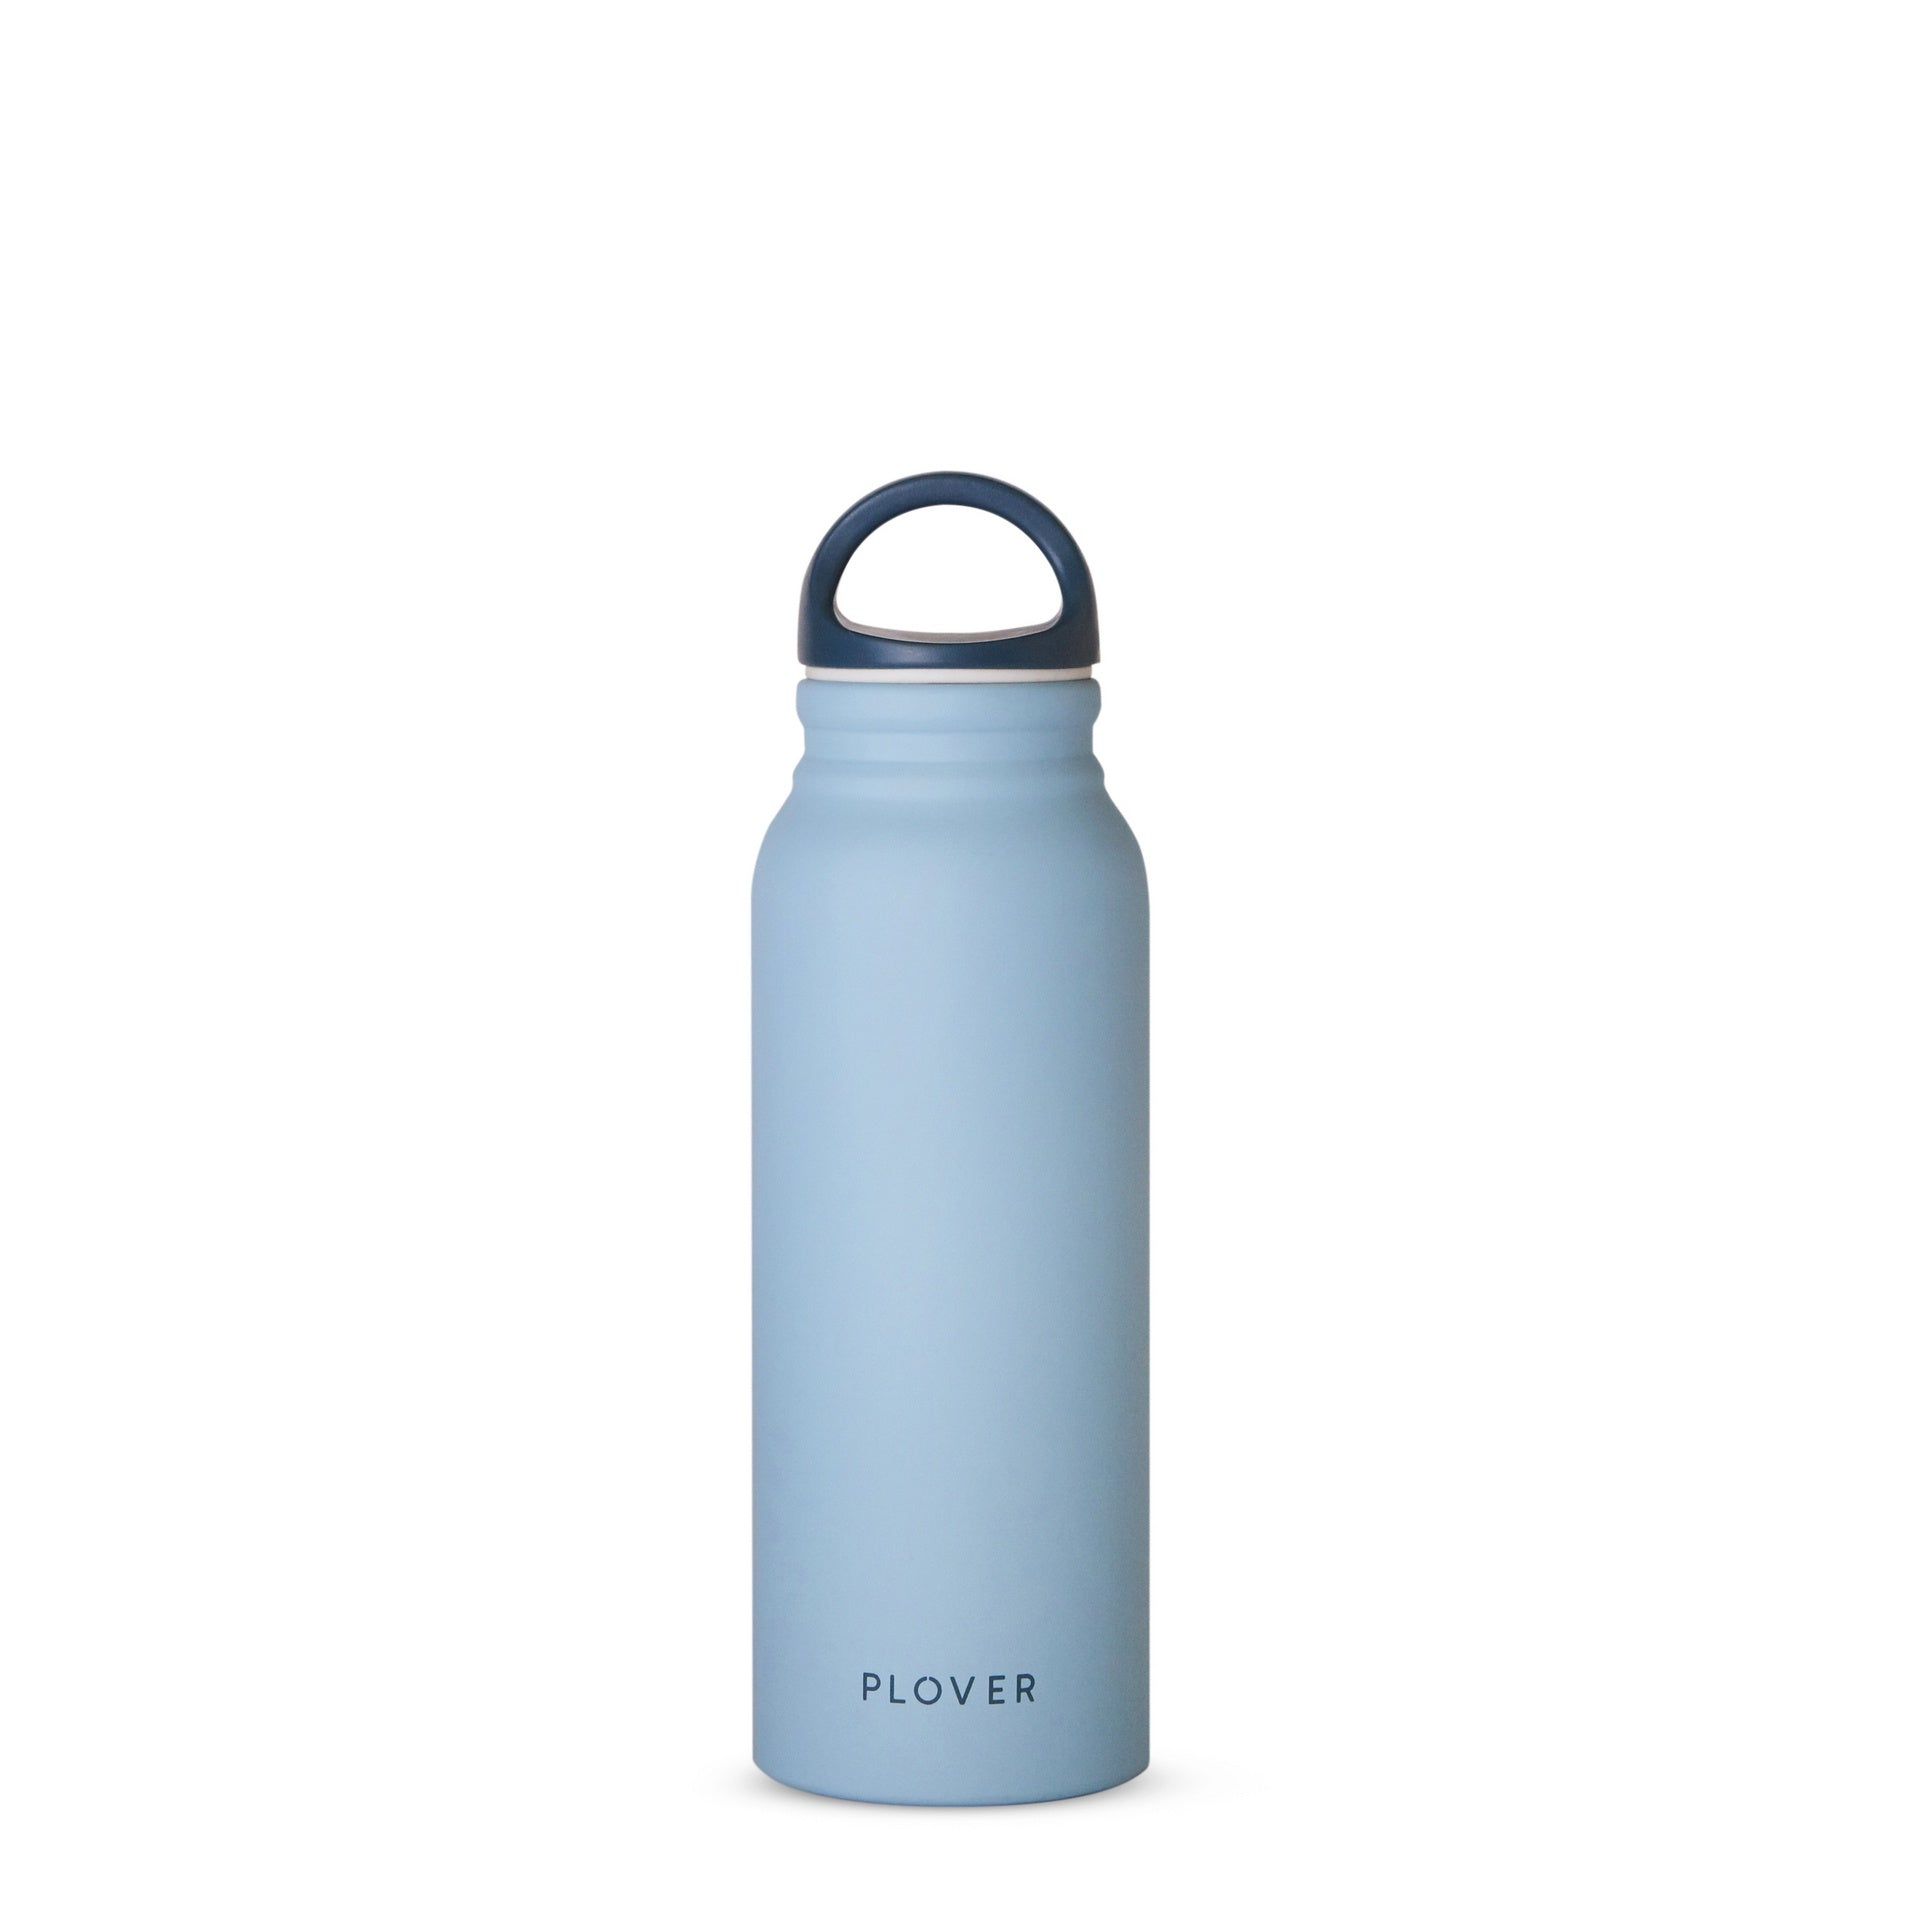 Plover Drink Bottle